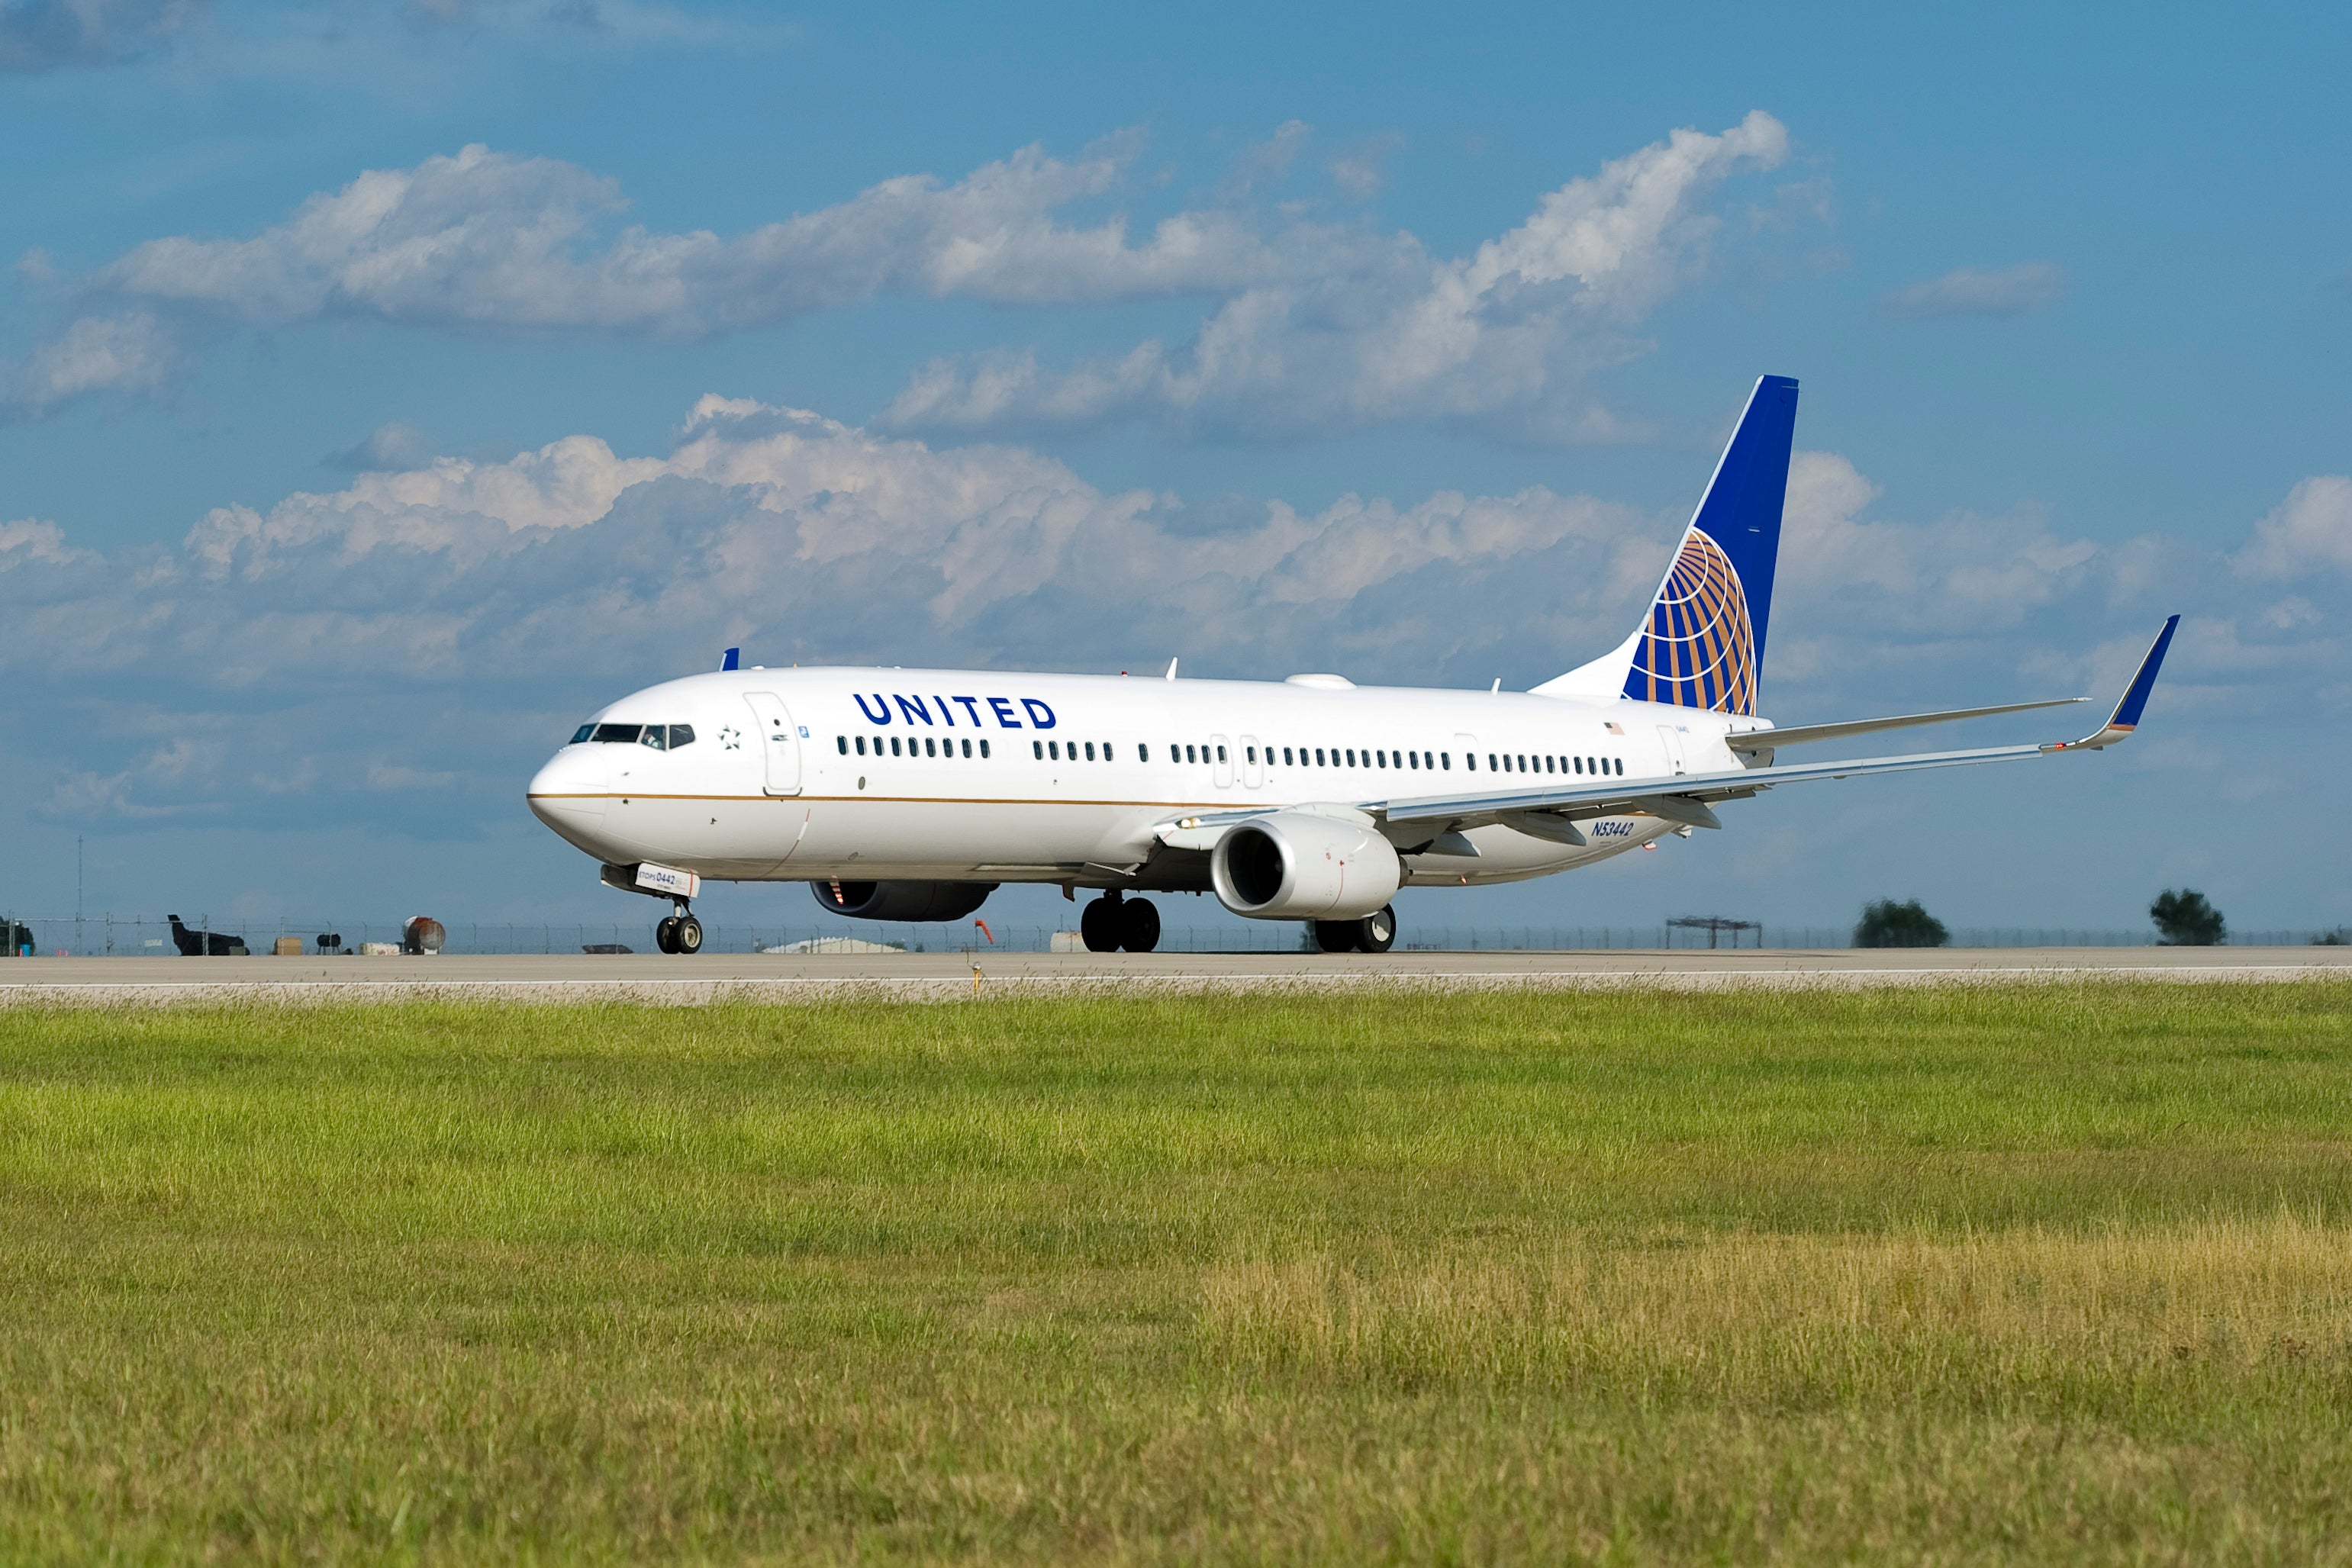 United Airlines Has a Huge Warning for Airlines   The Motley Fool